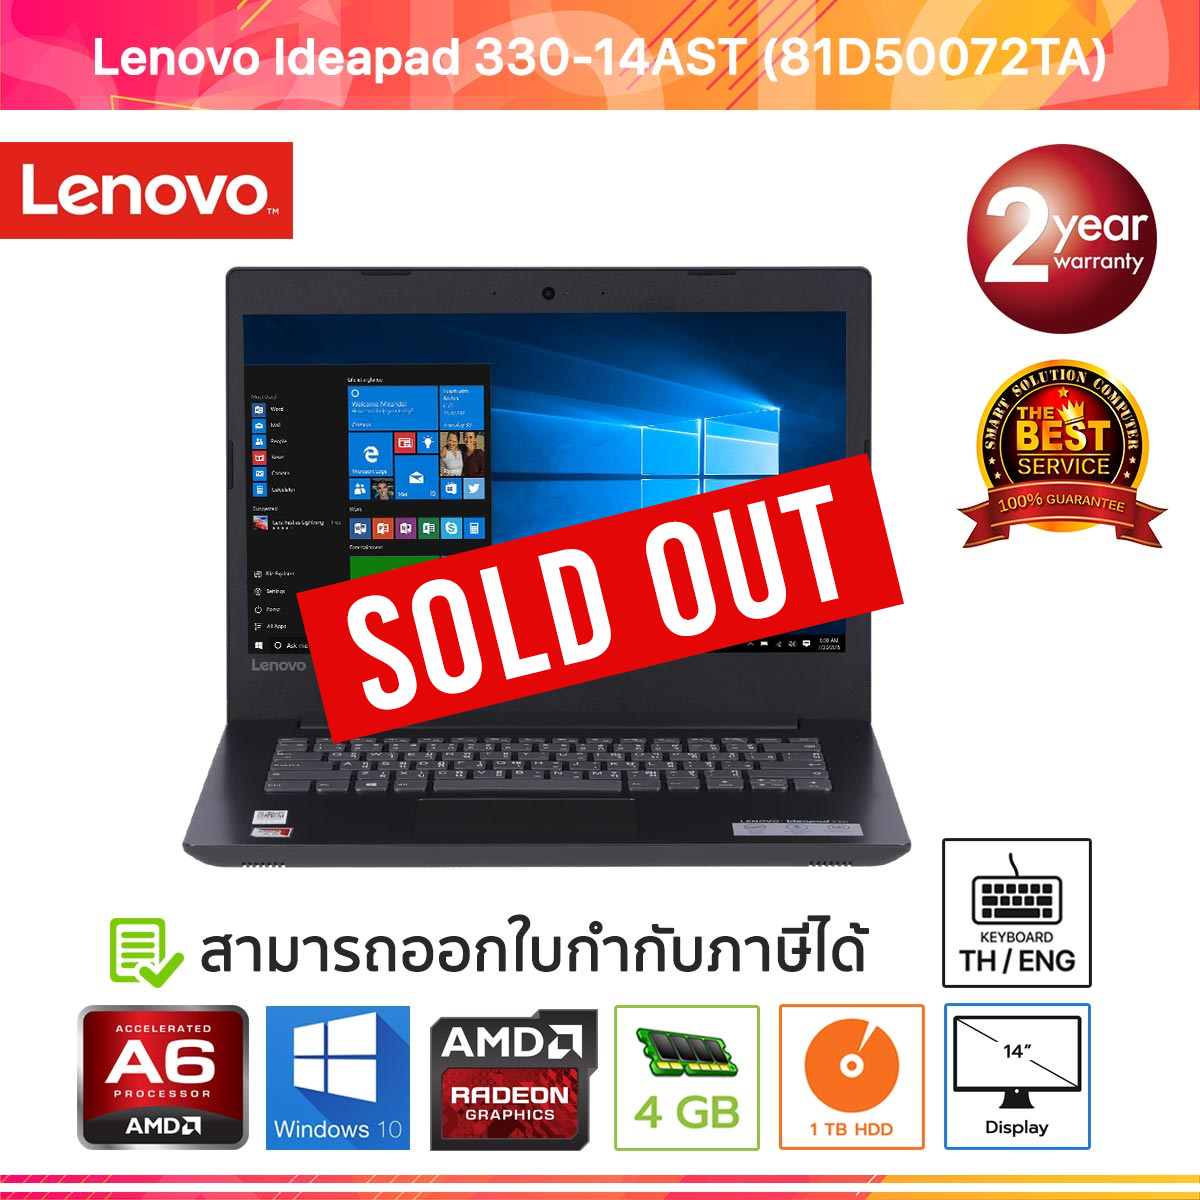 Lenovo Ideapad 330-14AST (81D50072TA) AMD A6-9225/4GB/1TB/14.0/Win10 (Black)